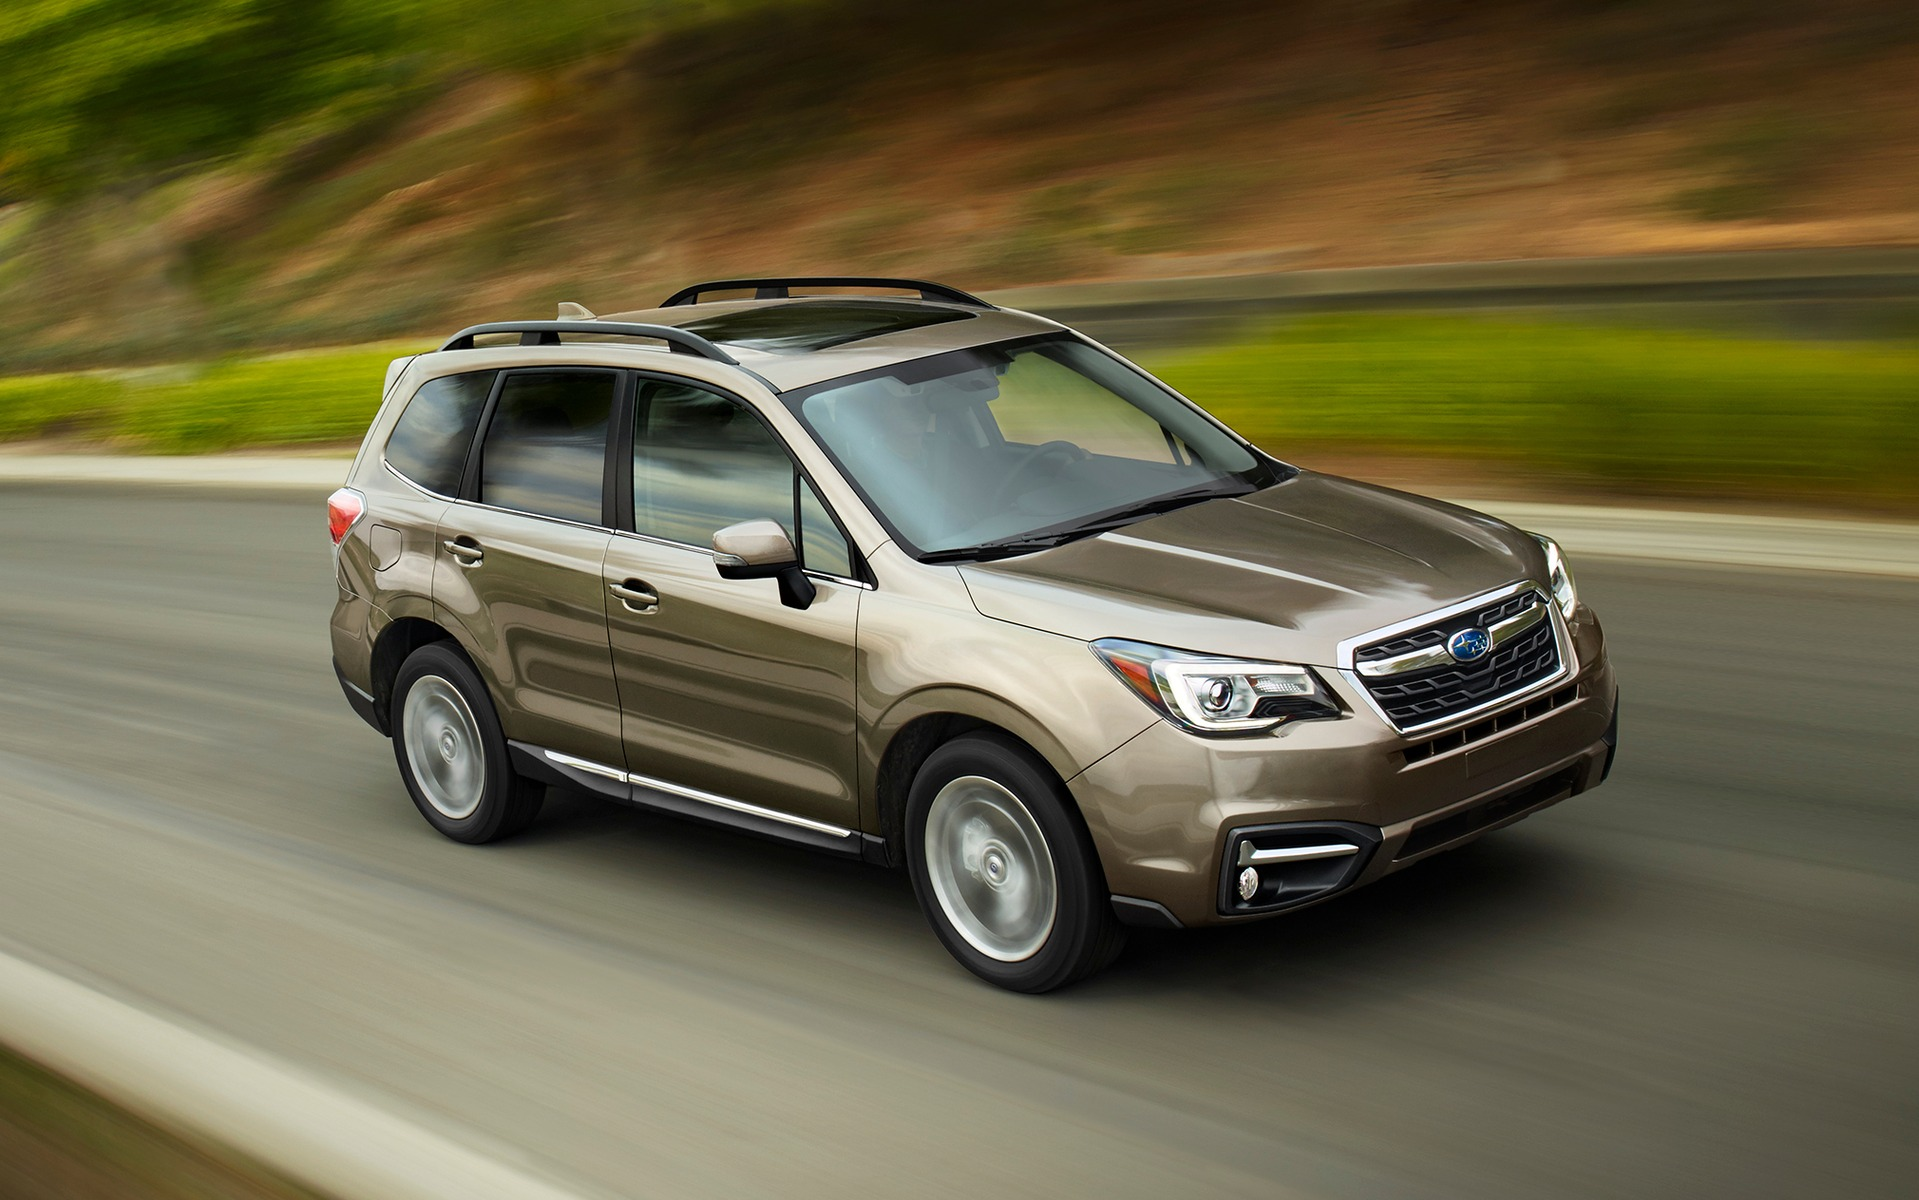 subaru canada annonce les prix du nouveau forester 2018 guide auto. Black Bedroom Furniture Sets. Home Design Ideas